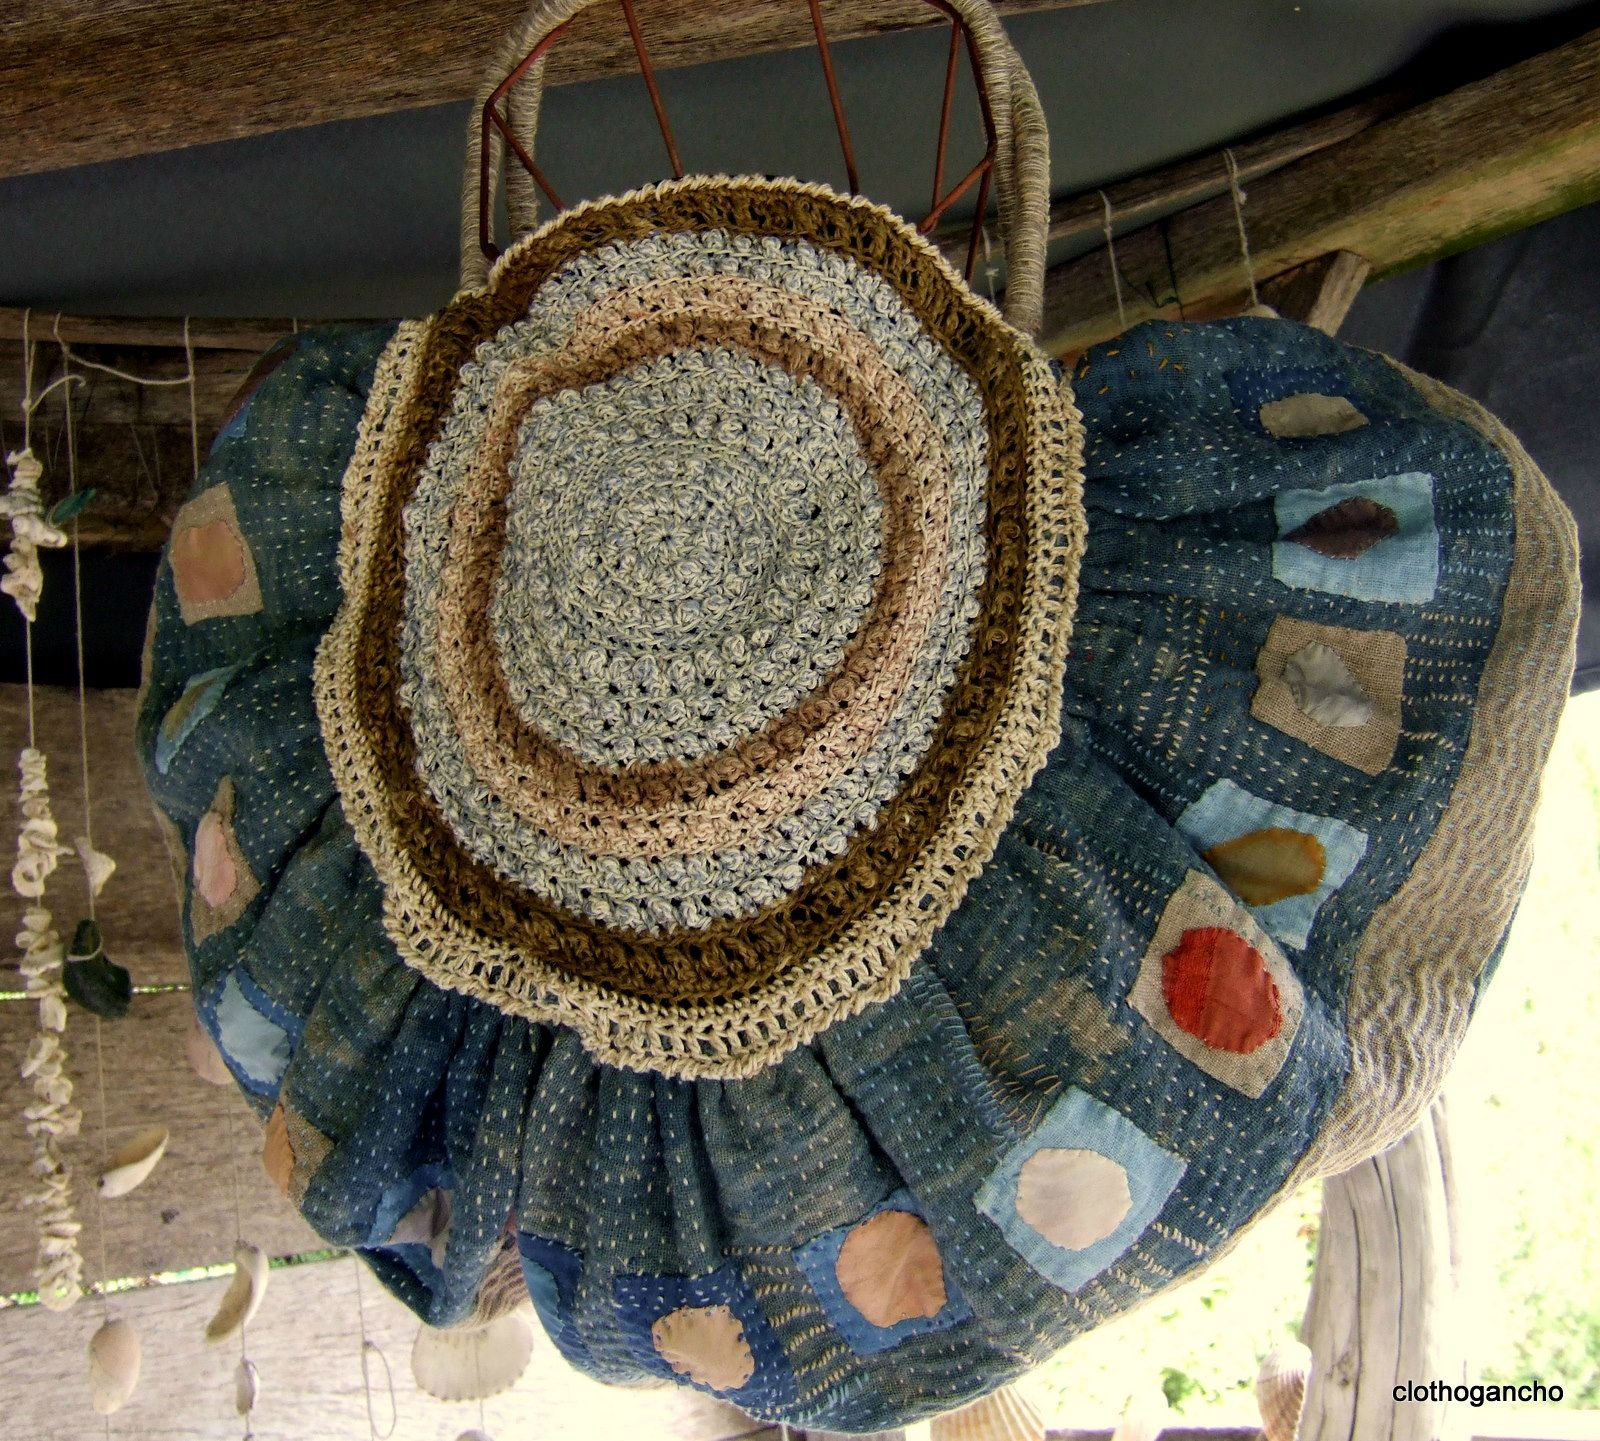 This resembles the purse you bought in Aspen age 14....love the combination of repurposed embroidered fabric (I'm assuming) and crochet. I would reinforce the circle with cardboard (essentially a pocket so you can take the cardboard out to wash) and probably make it smaller.